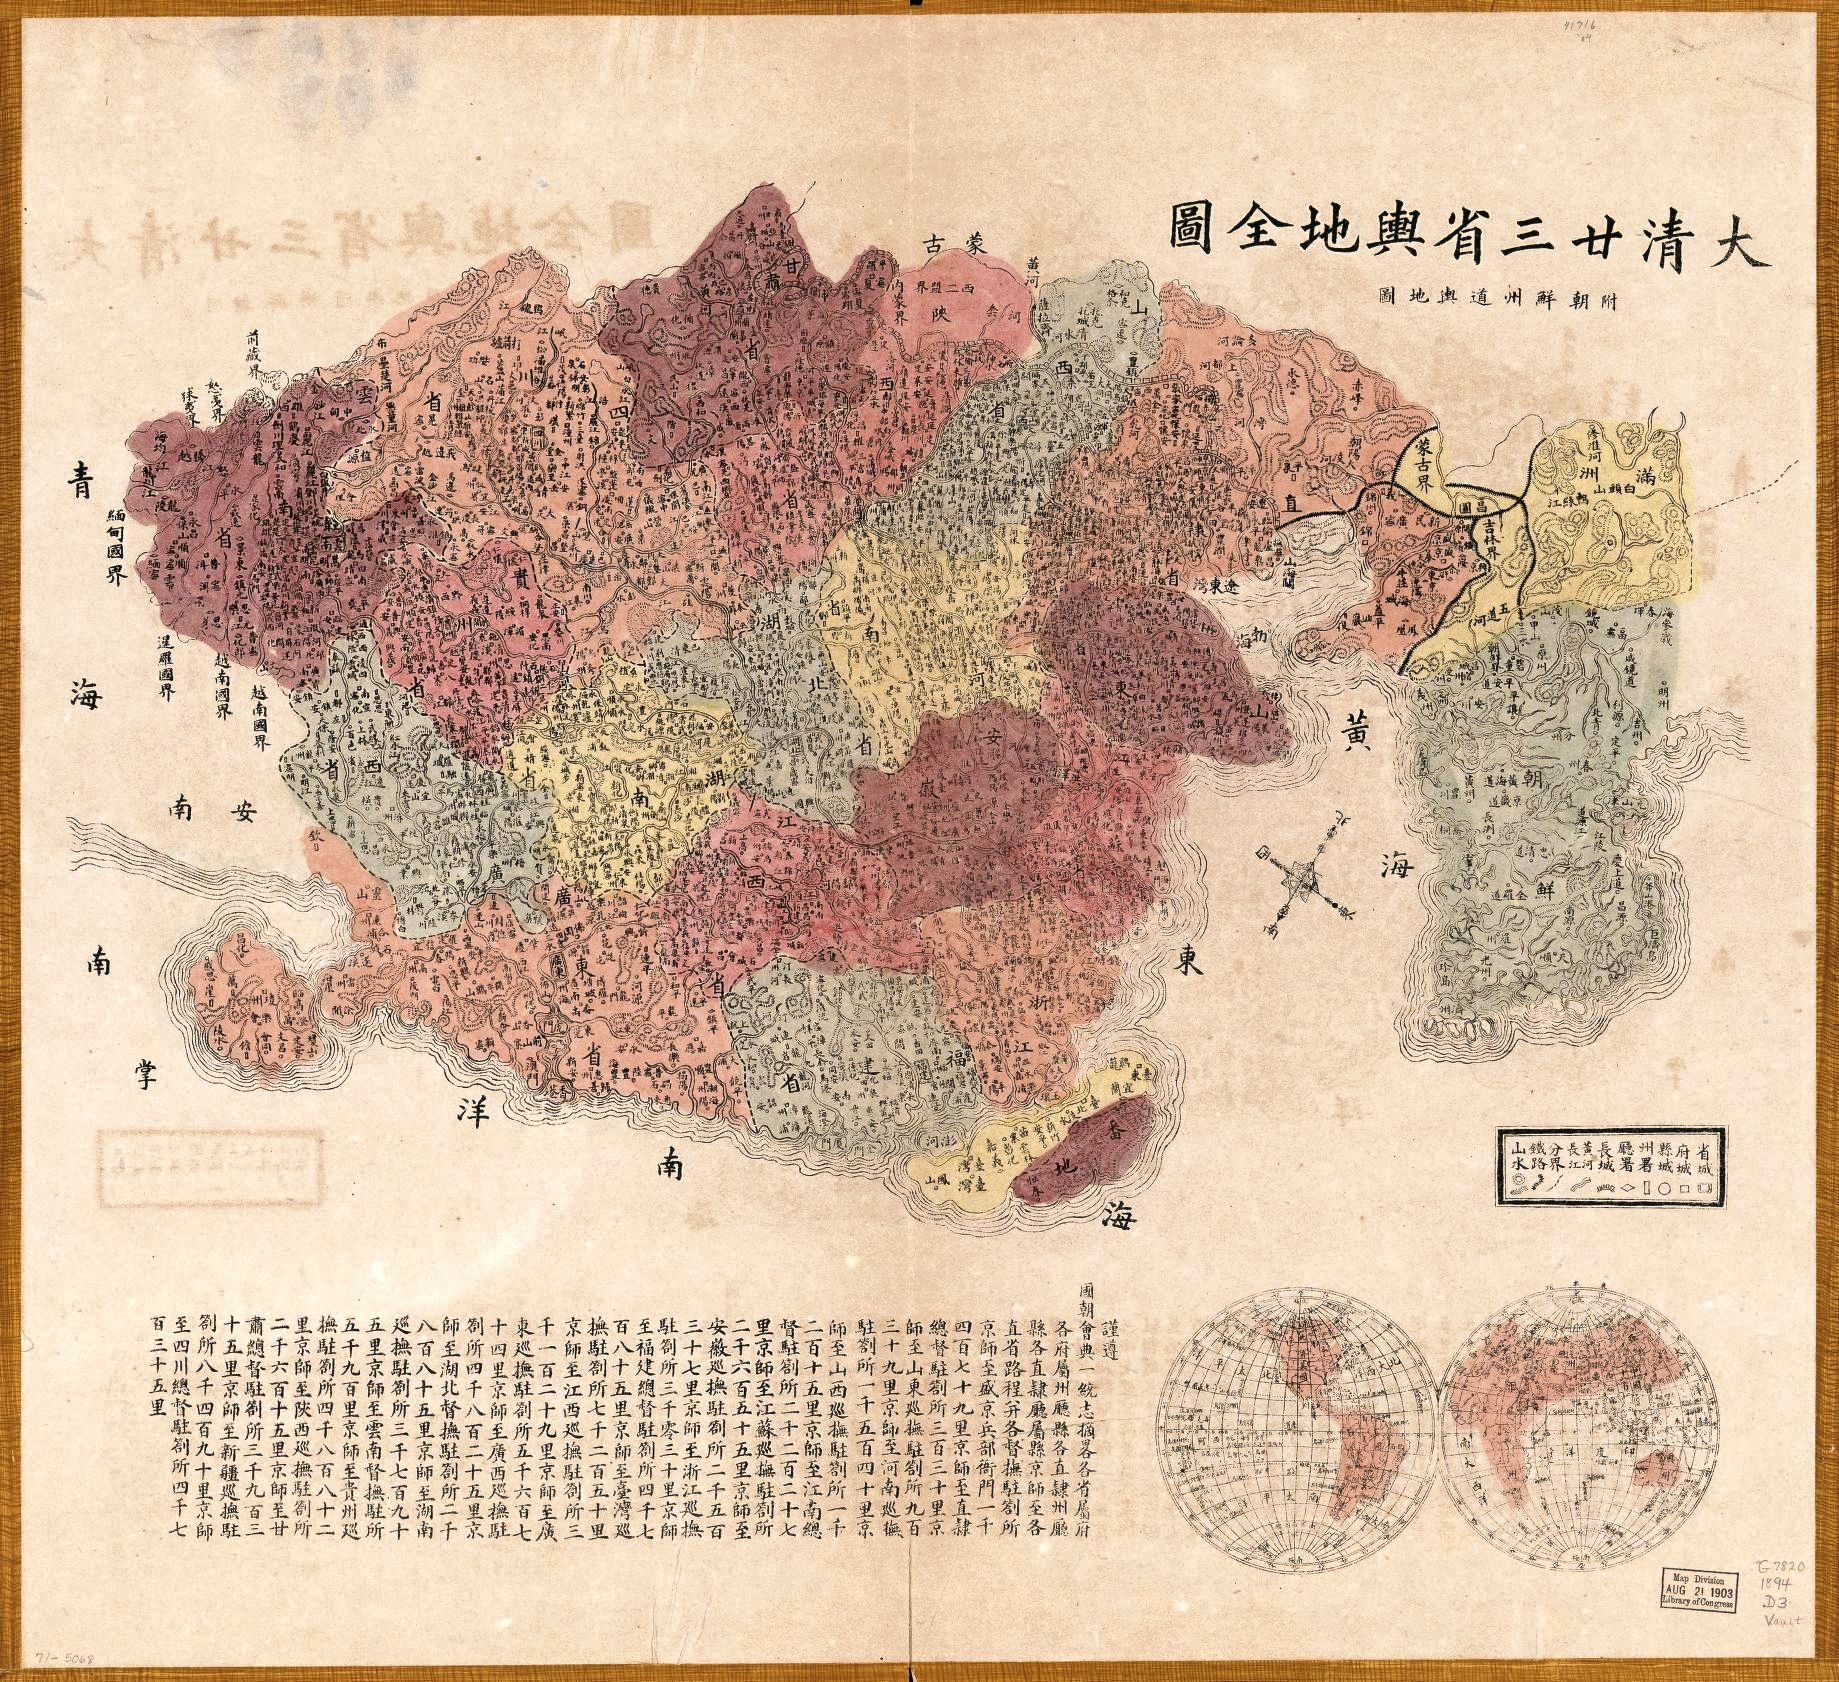 Photo of the 1885 map, Da Qing Er Shi San Sheng Yu Di Quan Tu